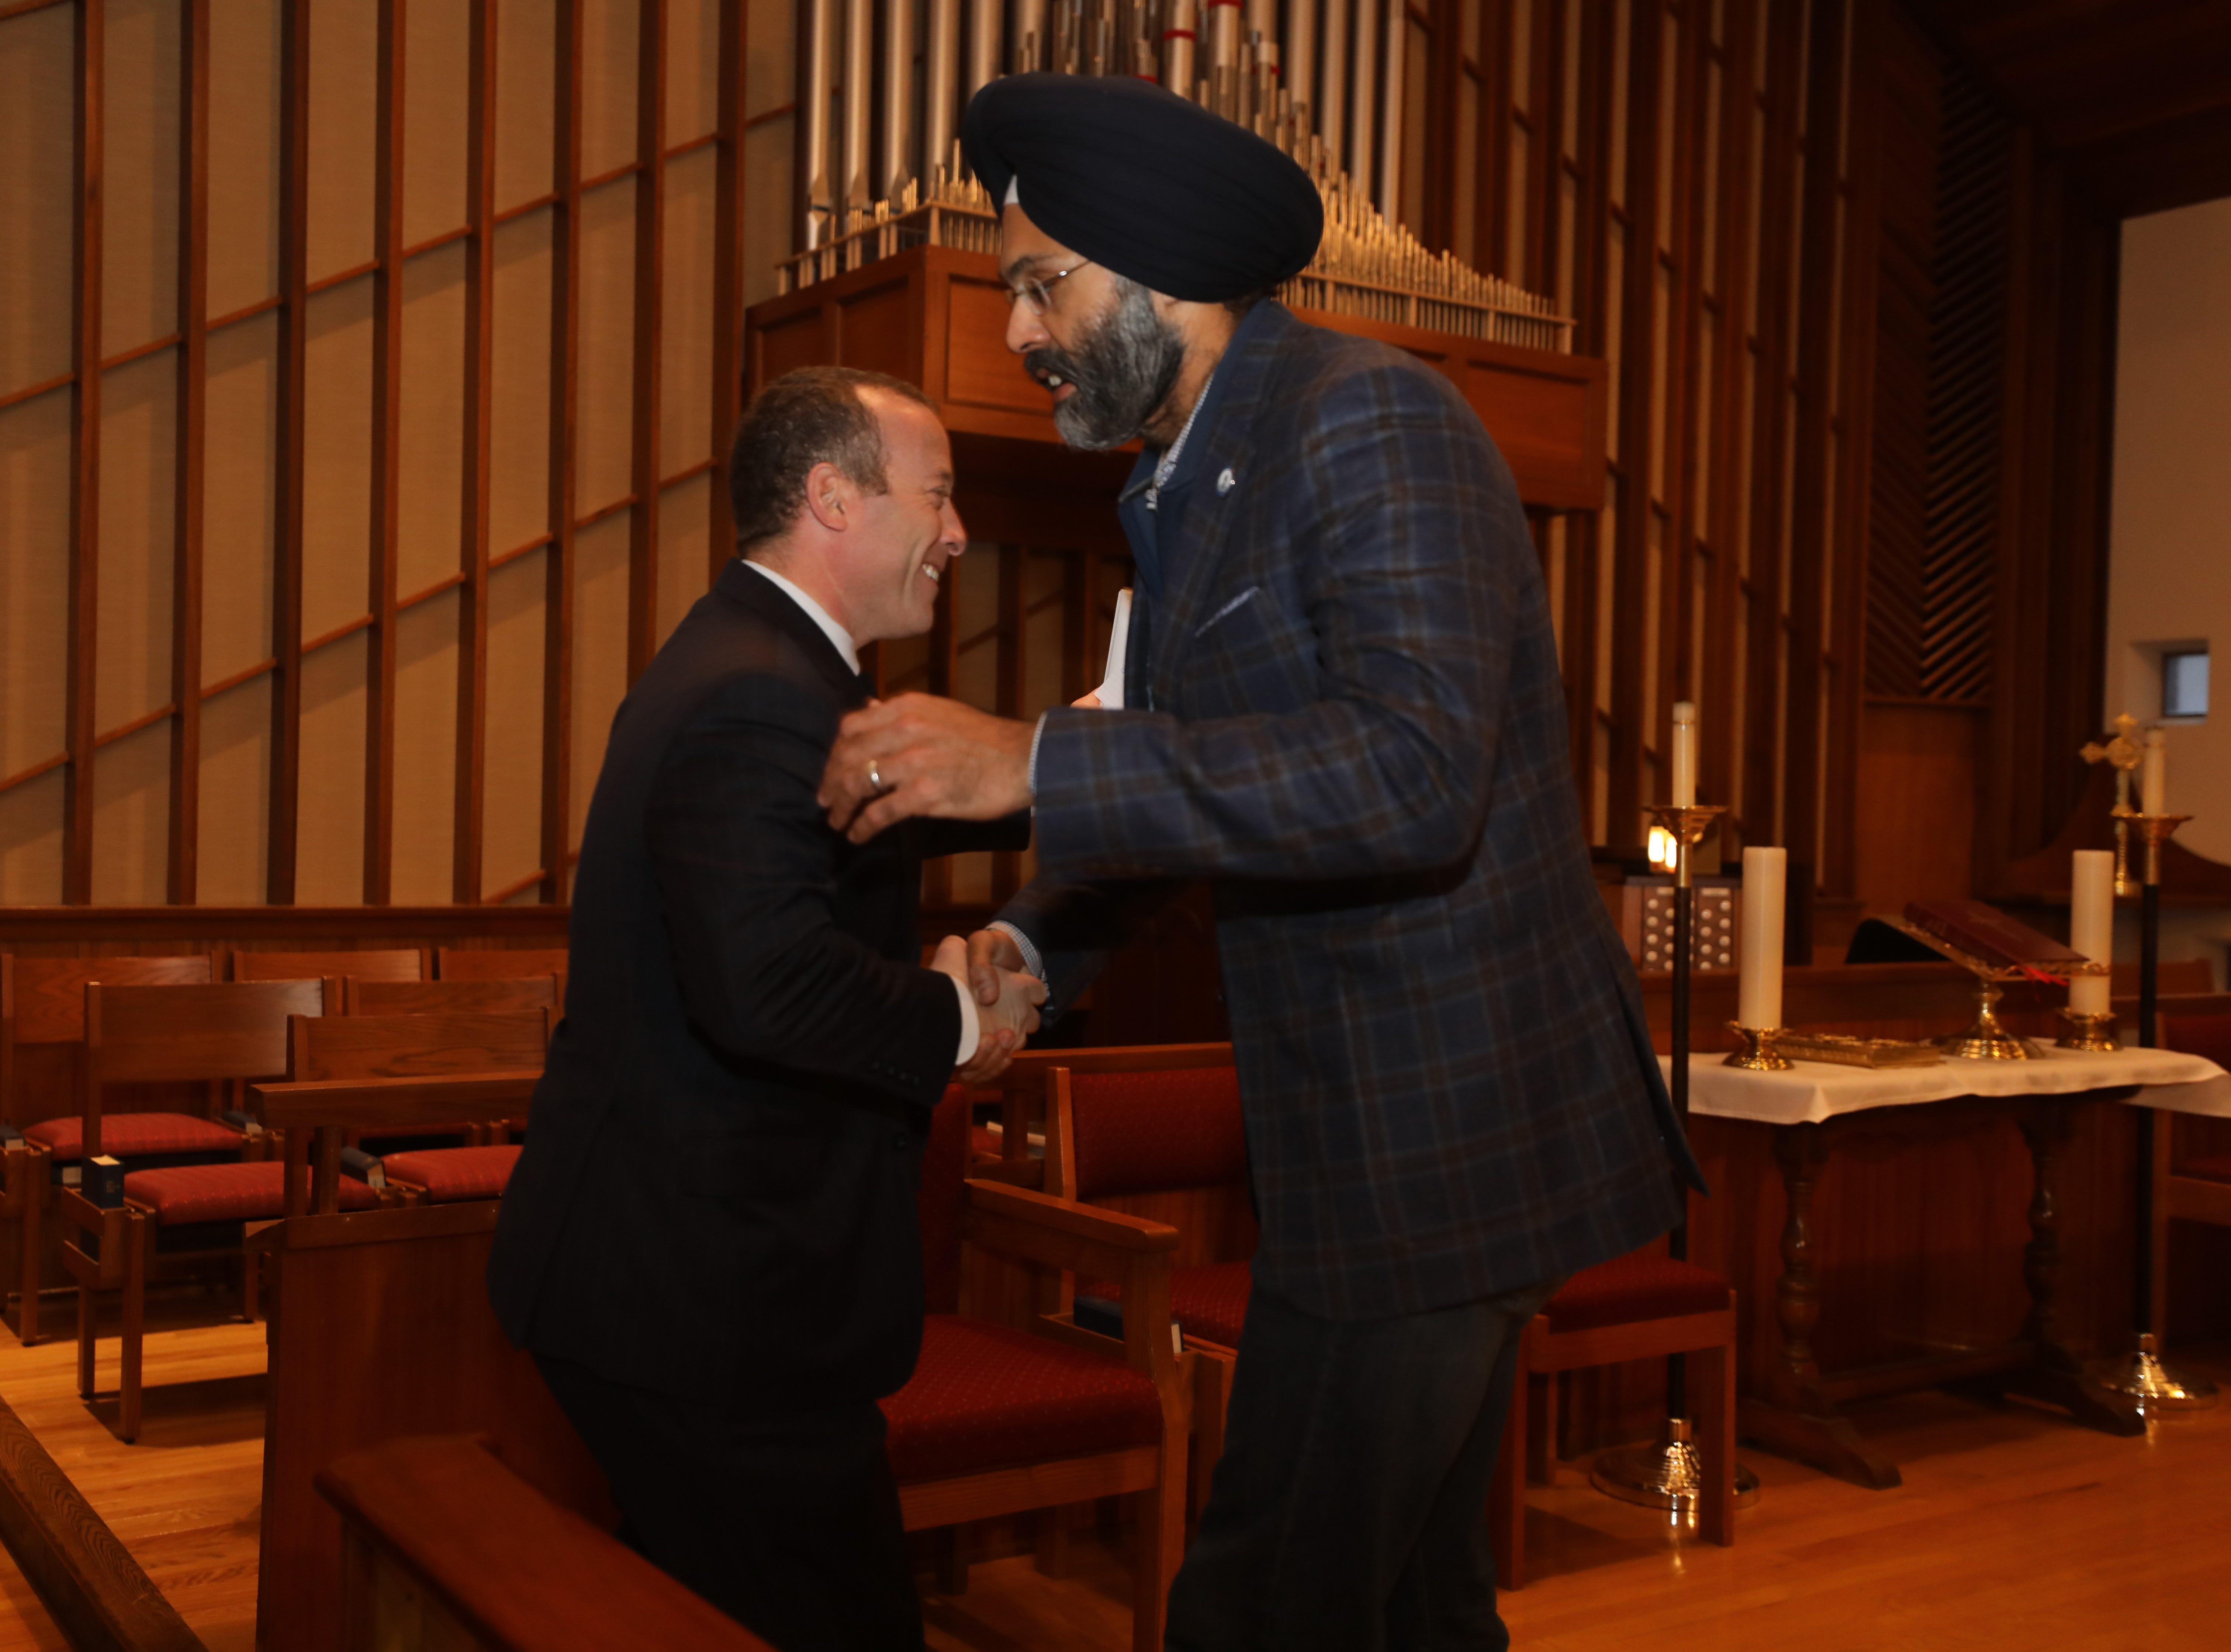 Congressman Josh Gottheimer was greeted by NJ Attorney General Gurbir Grewal as they both addressed a Social Justice Forum presented by the Dr. Martin Luther King Jr. Celebration Committee of Ridgewood and Glenn Rock at the All Saints Episcopal Church in Glenn Rock on January 19, 2019.